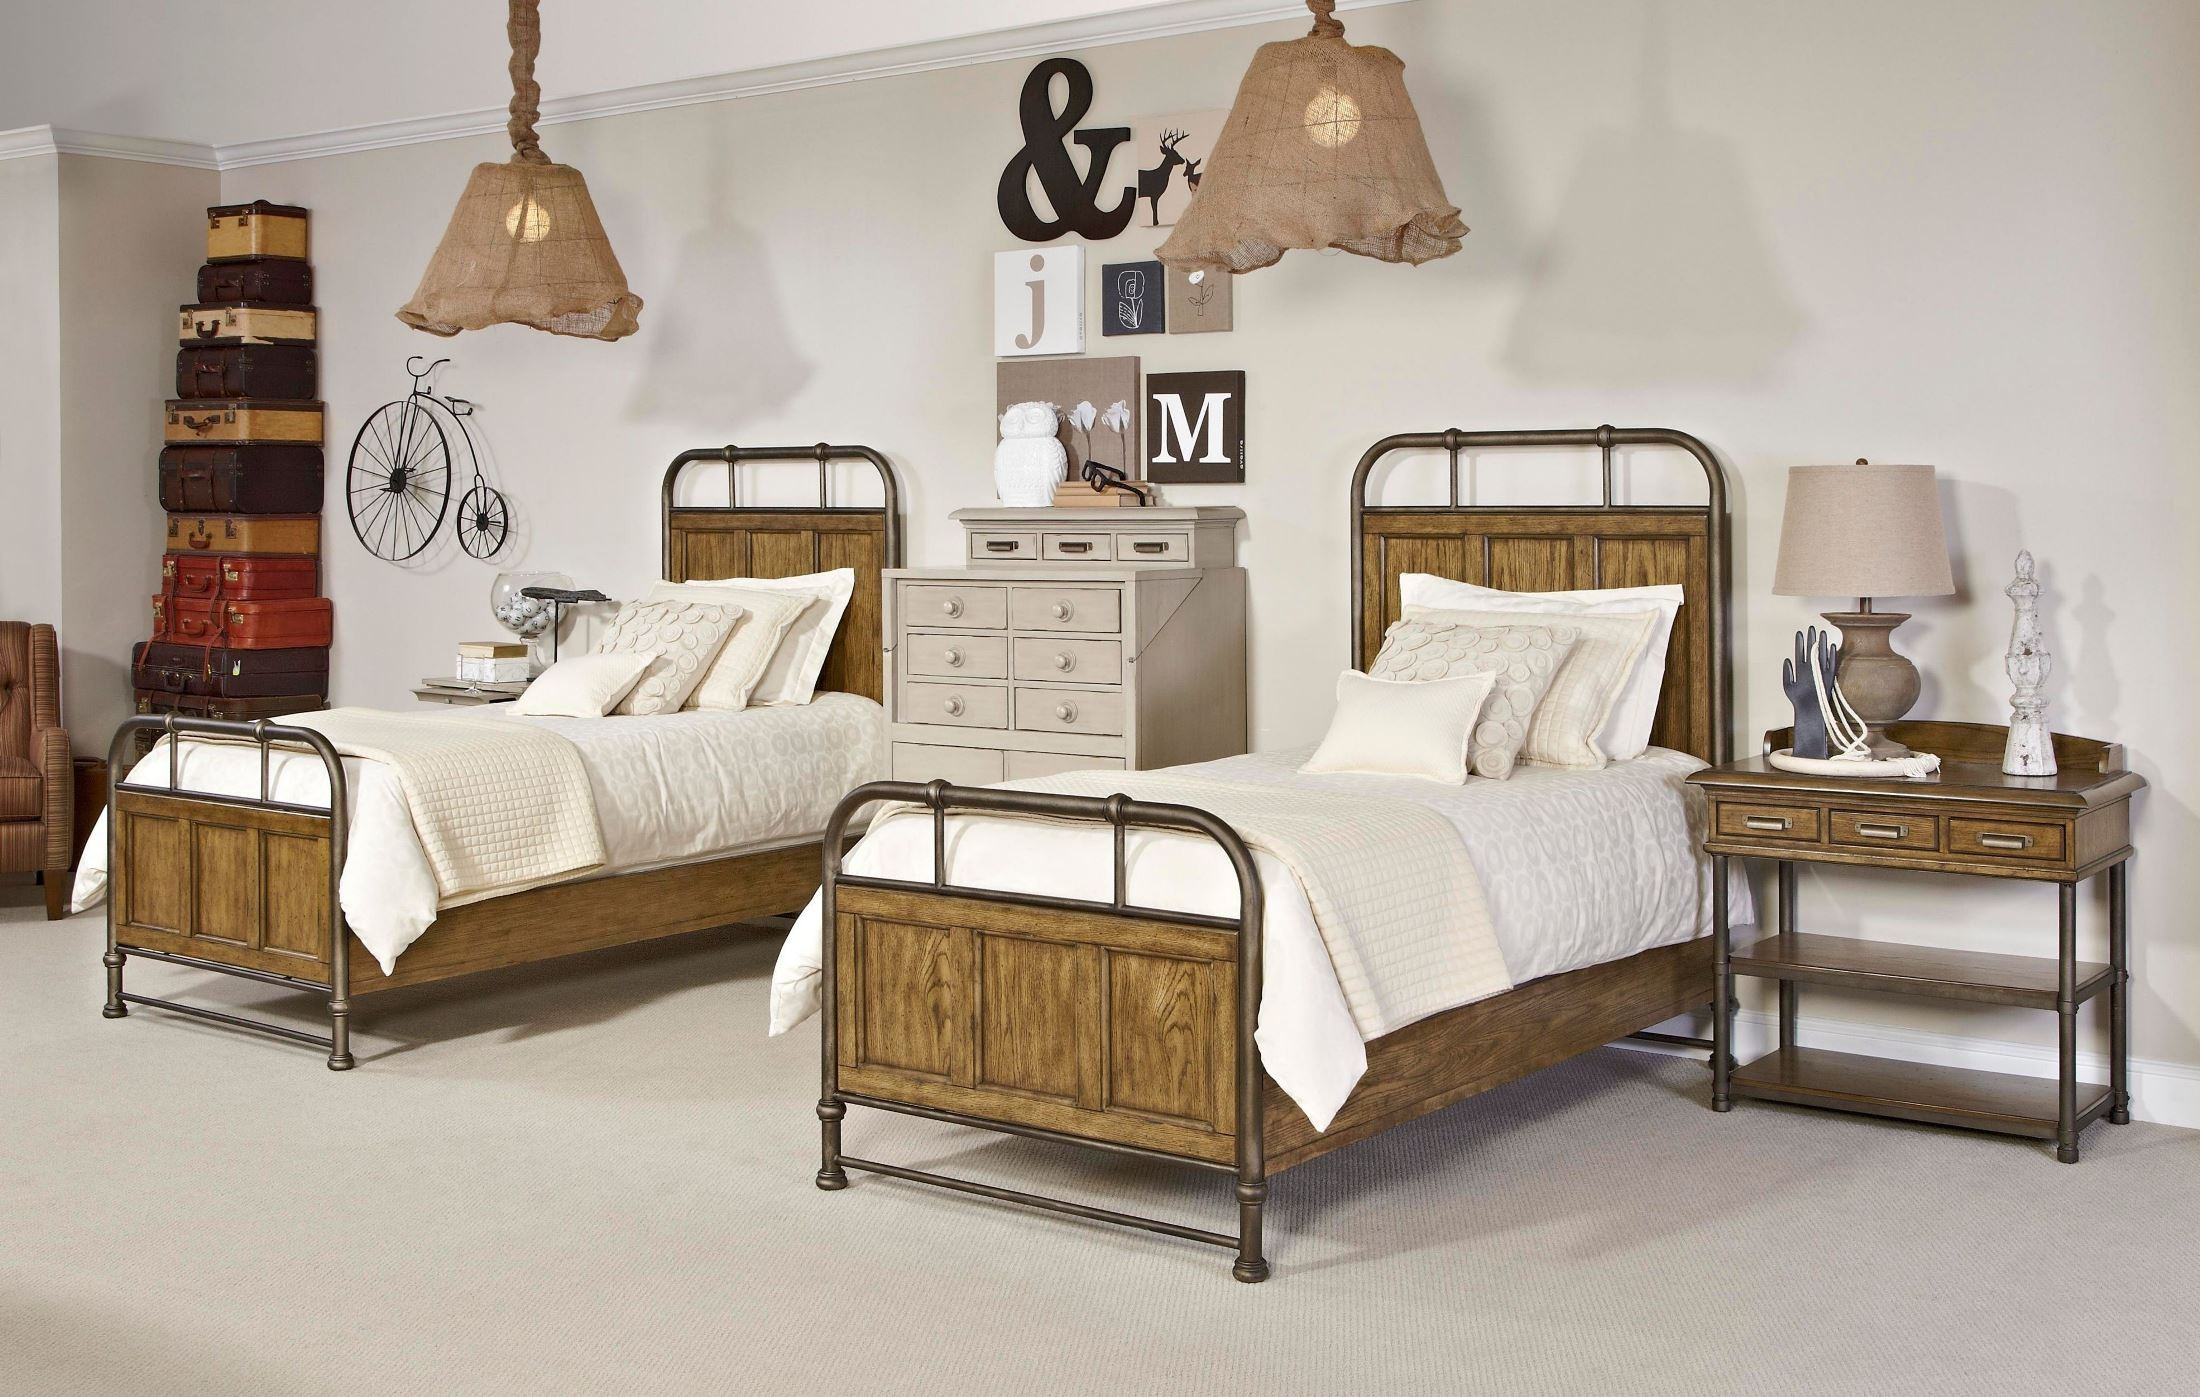 New Vintage Brown Youth Metal Wood Bedstead Bedroom Set From Broyhill 4808 2